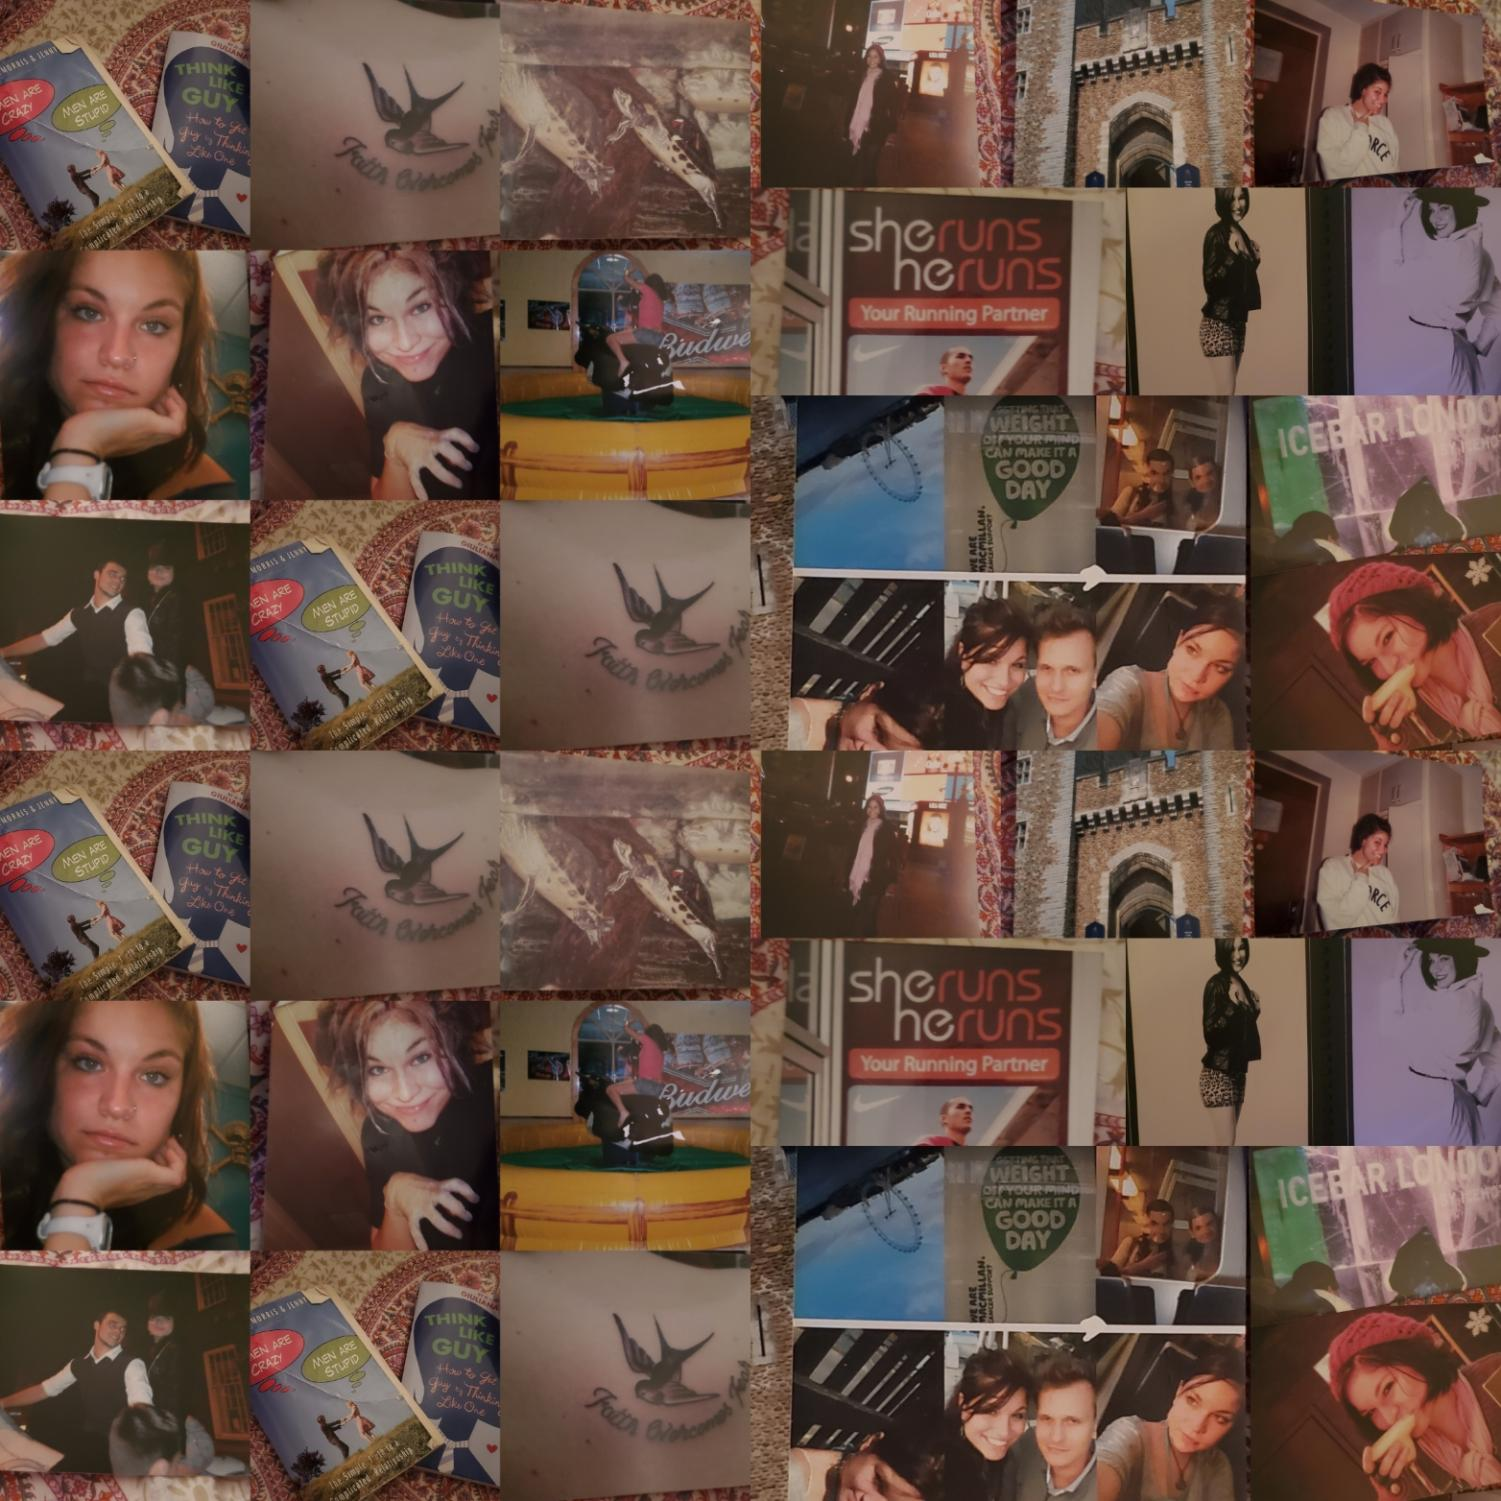 A collage of photos courtesy of Ashton Byers when she was first stationed in the Air Force in England. The photos show the ups and downs of my life and the choices I made following a bad breakup. Photos courtesy of Ashton Byers